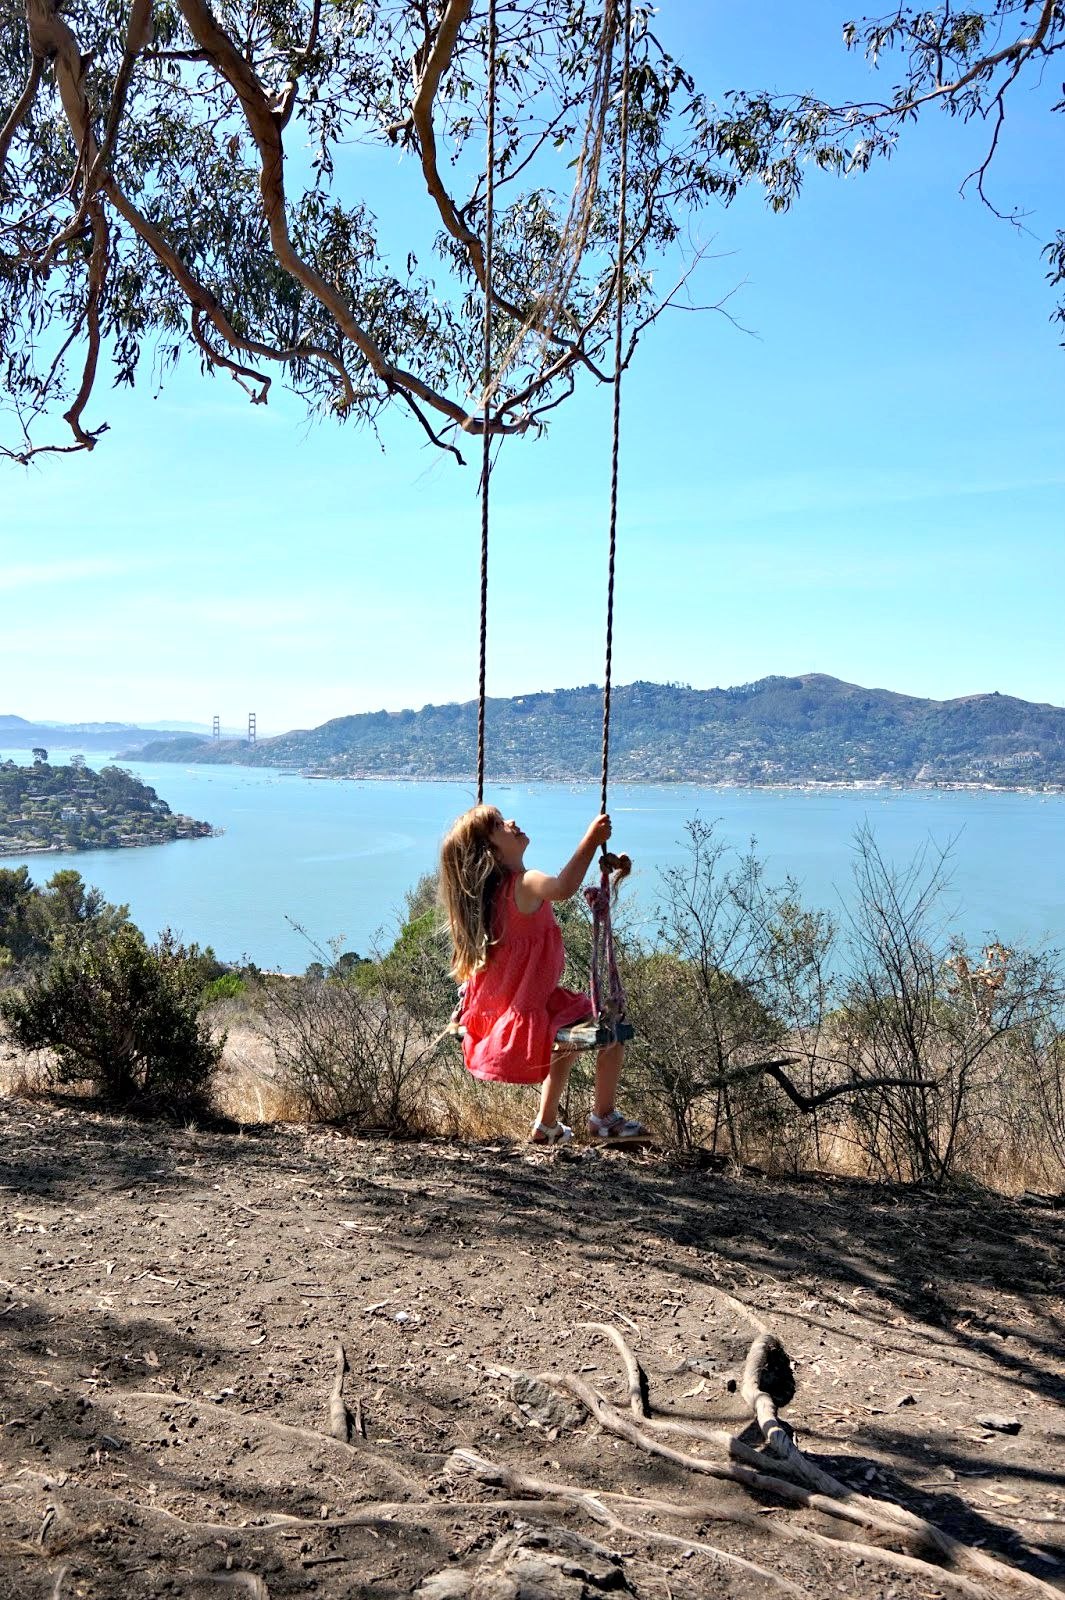 If You Re Looking For A Really Short Hike That Leads To Some Of The Best Views In Bay Area And An Awesome Rope Swing Then Look No Further Hippie Tree